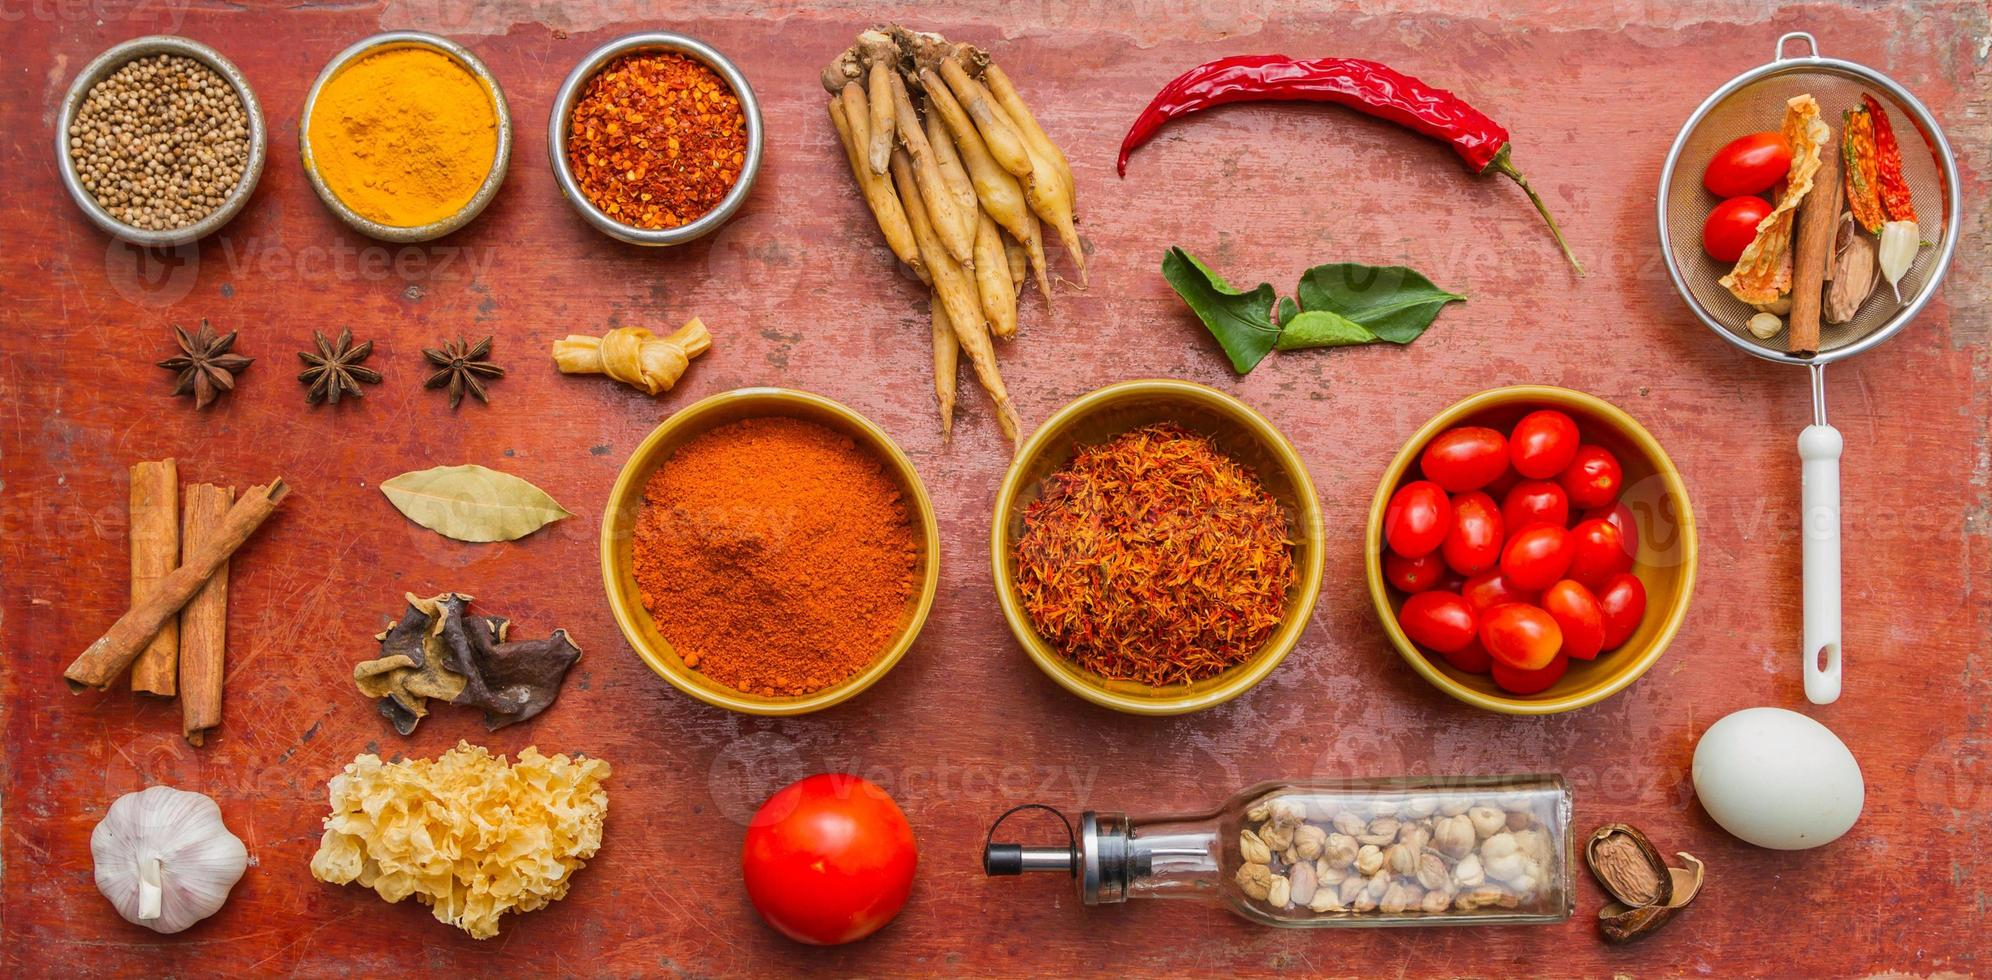 Mixed spices and herbs on red background. photo